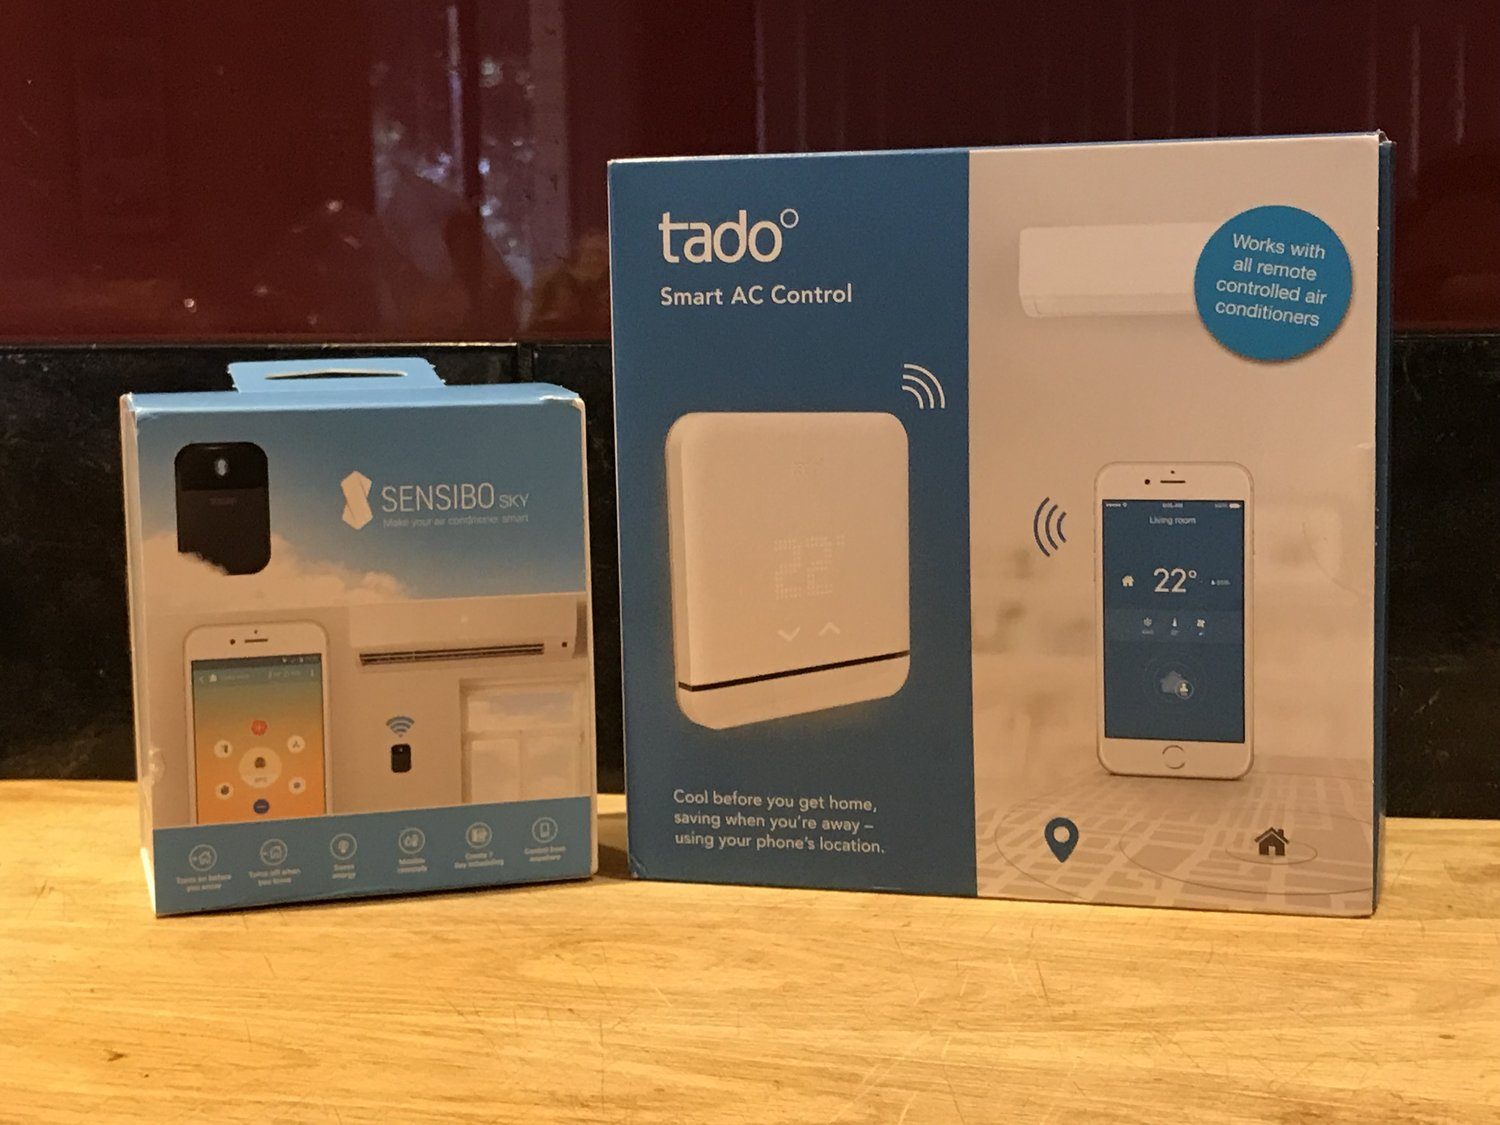 Smart Ac Control Sensibo Vs Tado Linkdhome